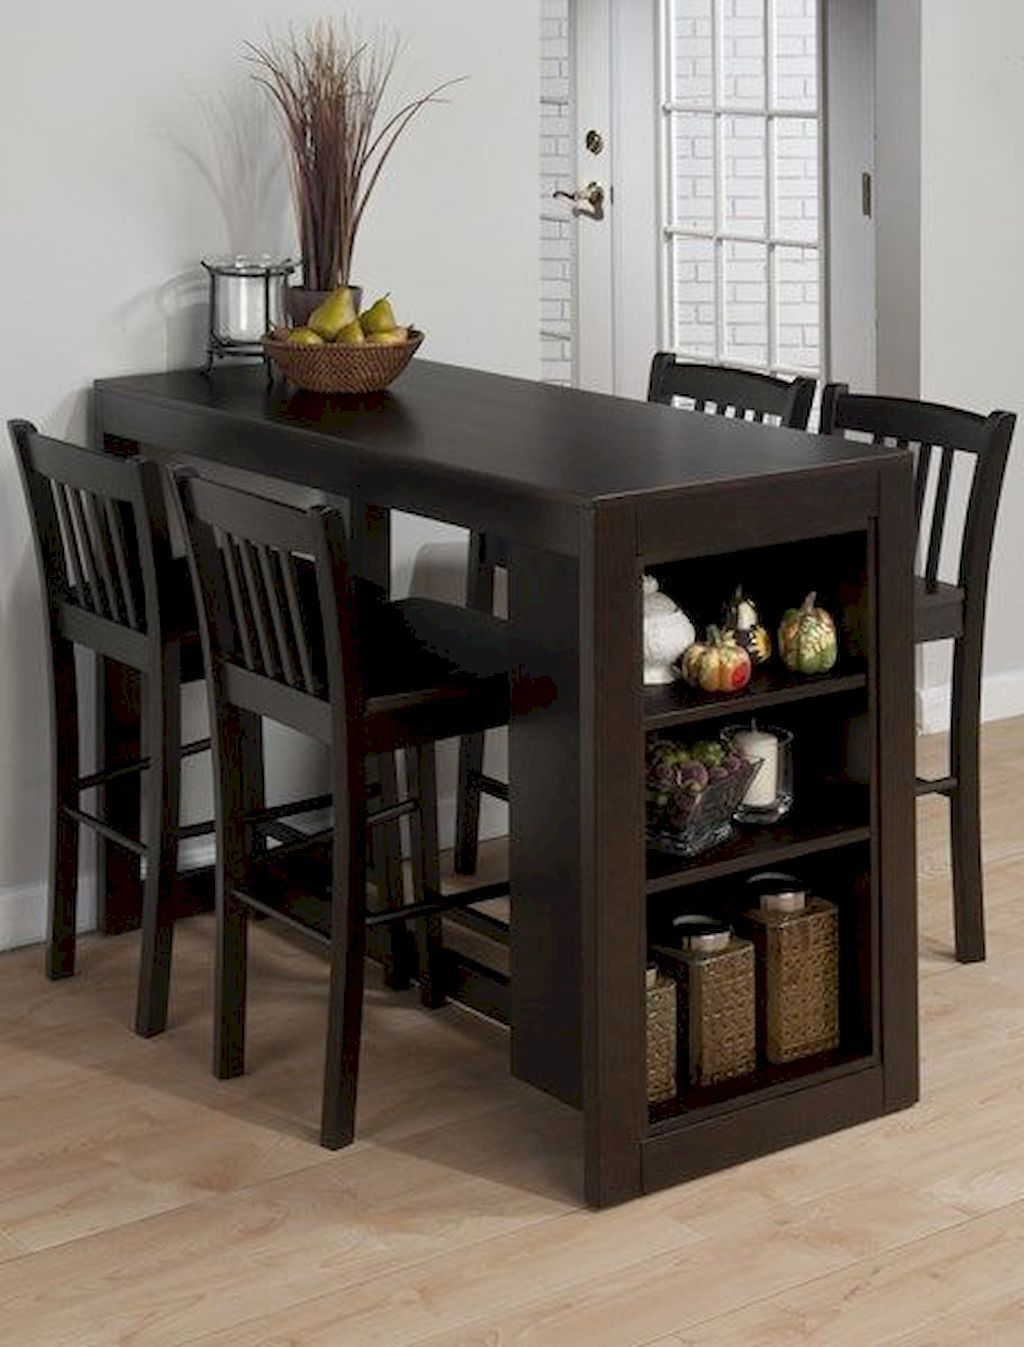 60 Genius Small Dining Room Design Ideas Small Kitchen Tables